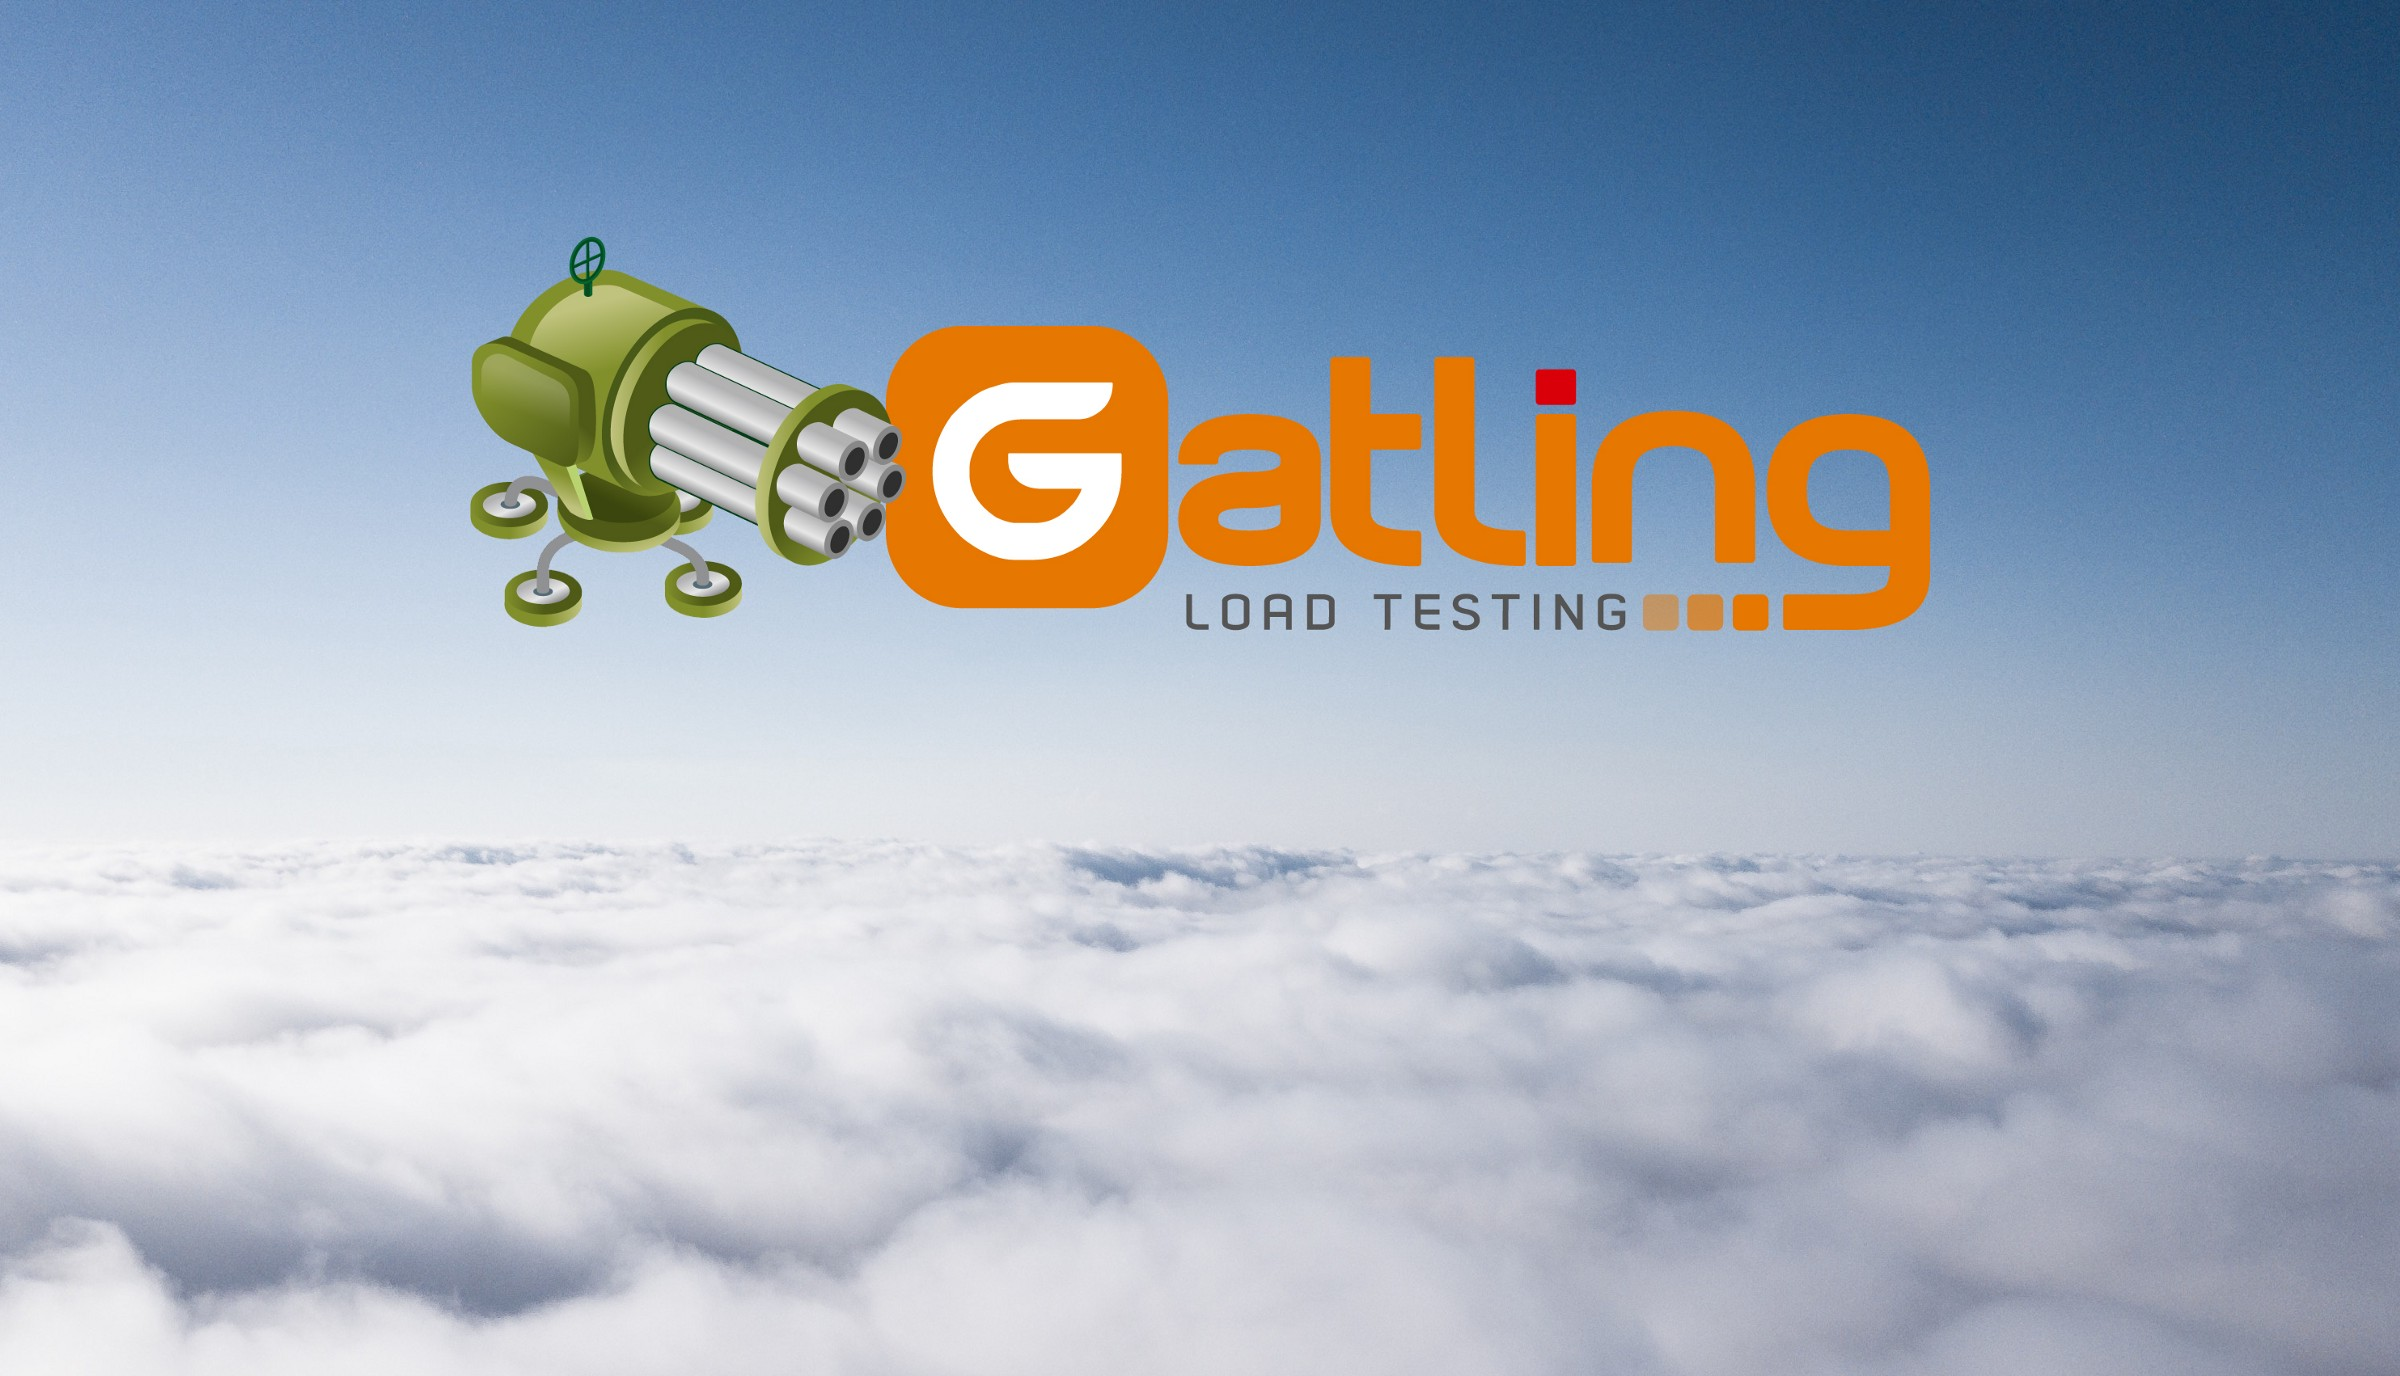 How we leveraged our cloud infrastructure to scale Gatling tests